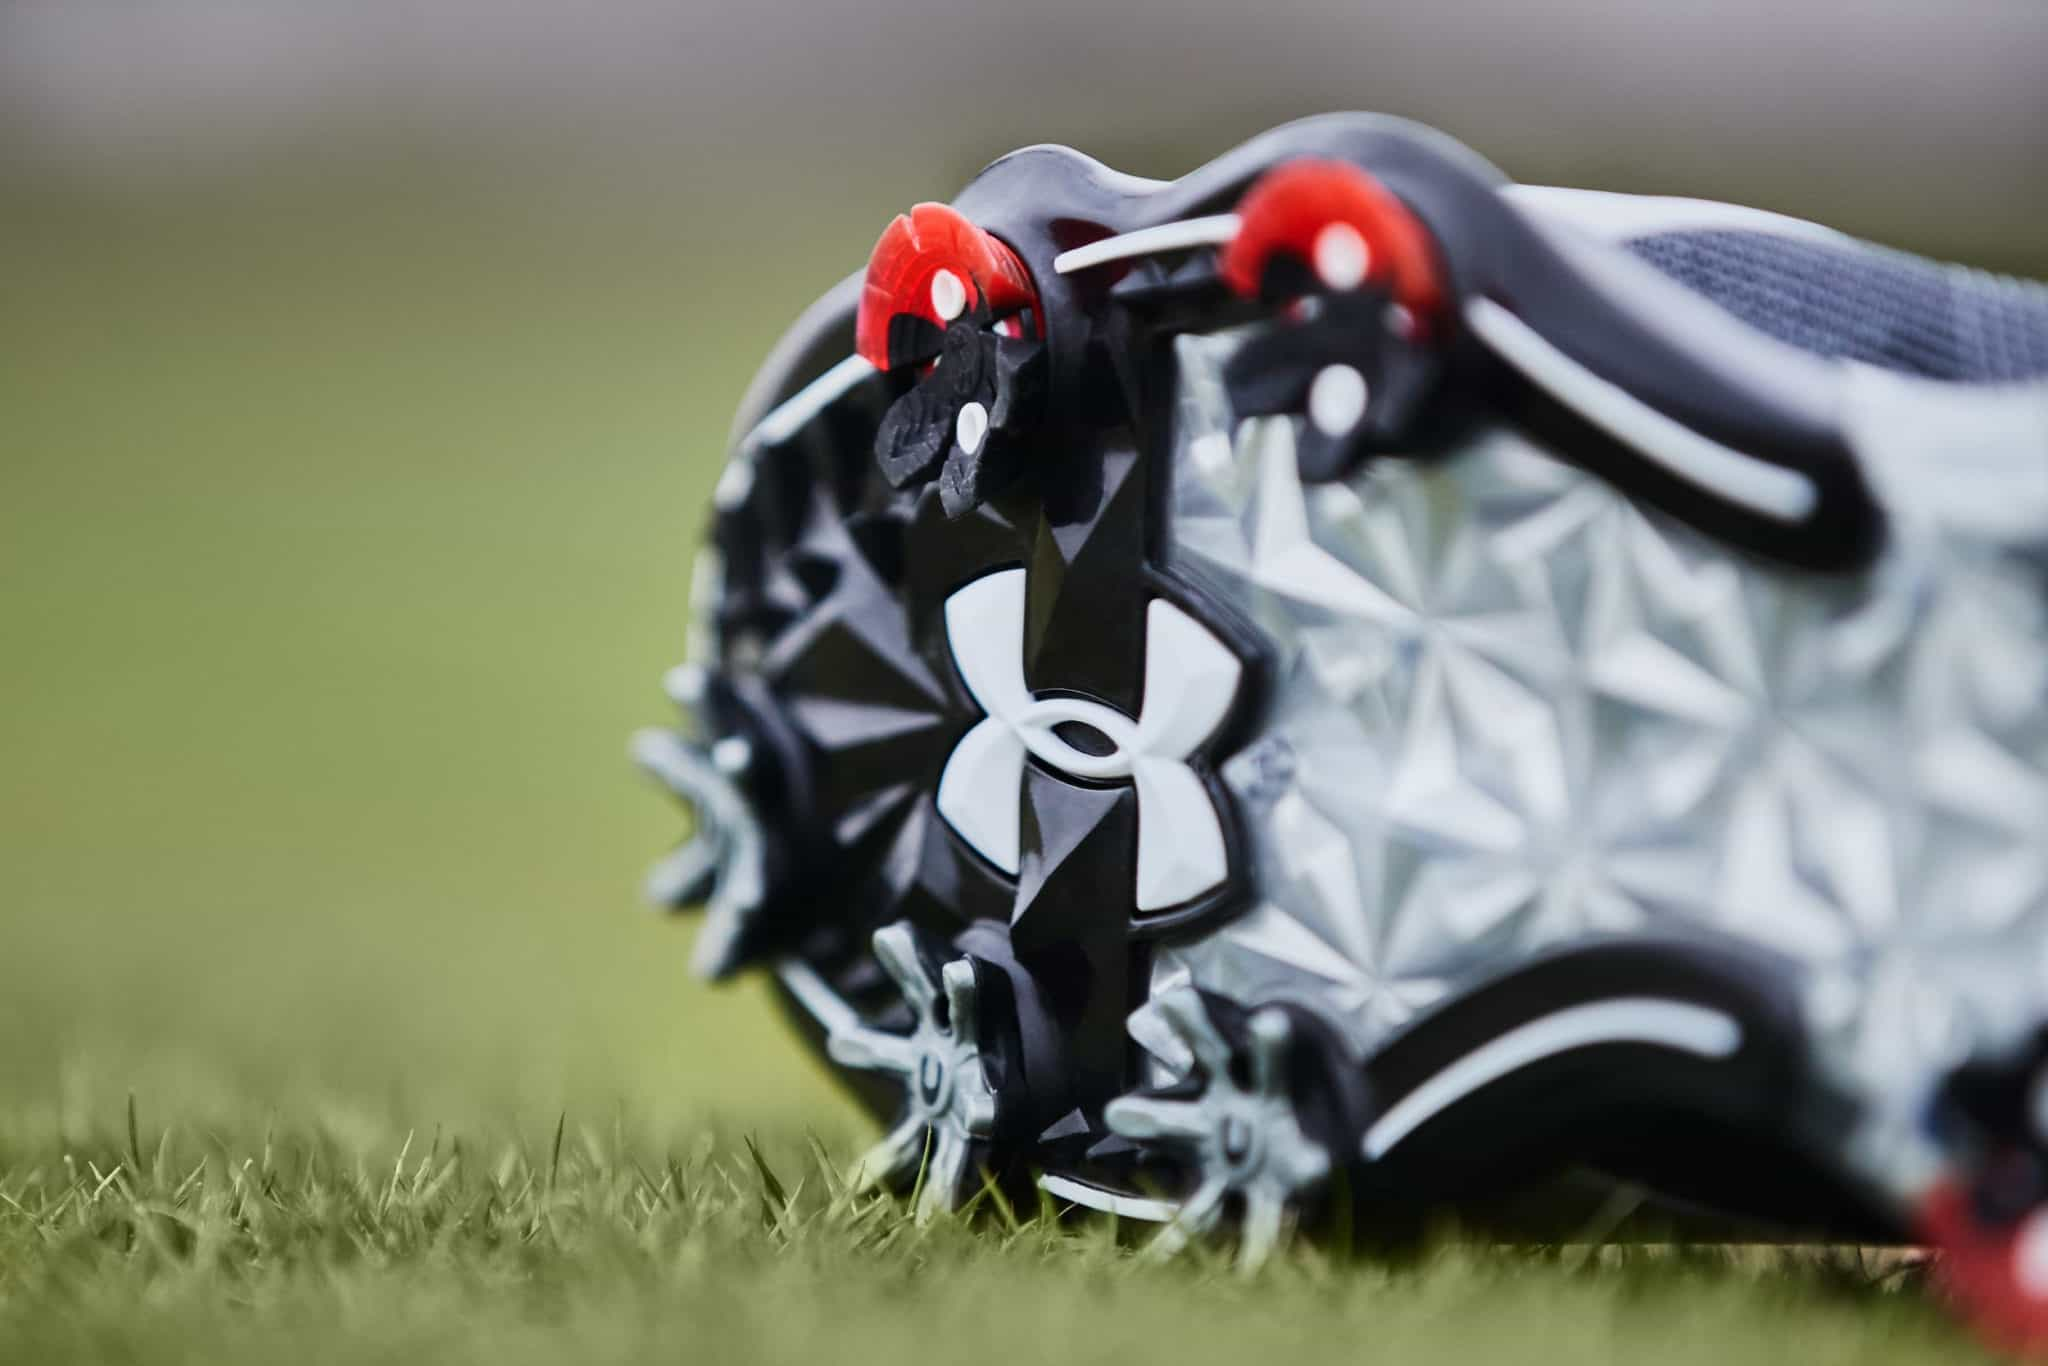 Up close shot of the Spieth 2 under armour golf shoes. Up close to the removable spikes